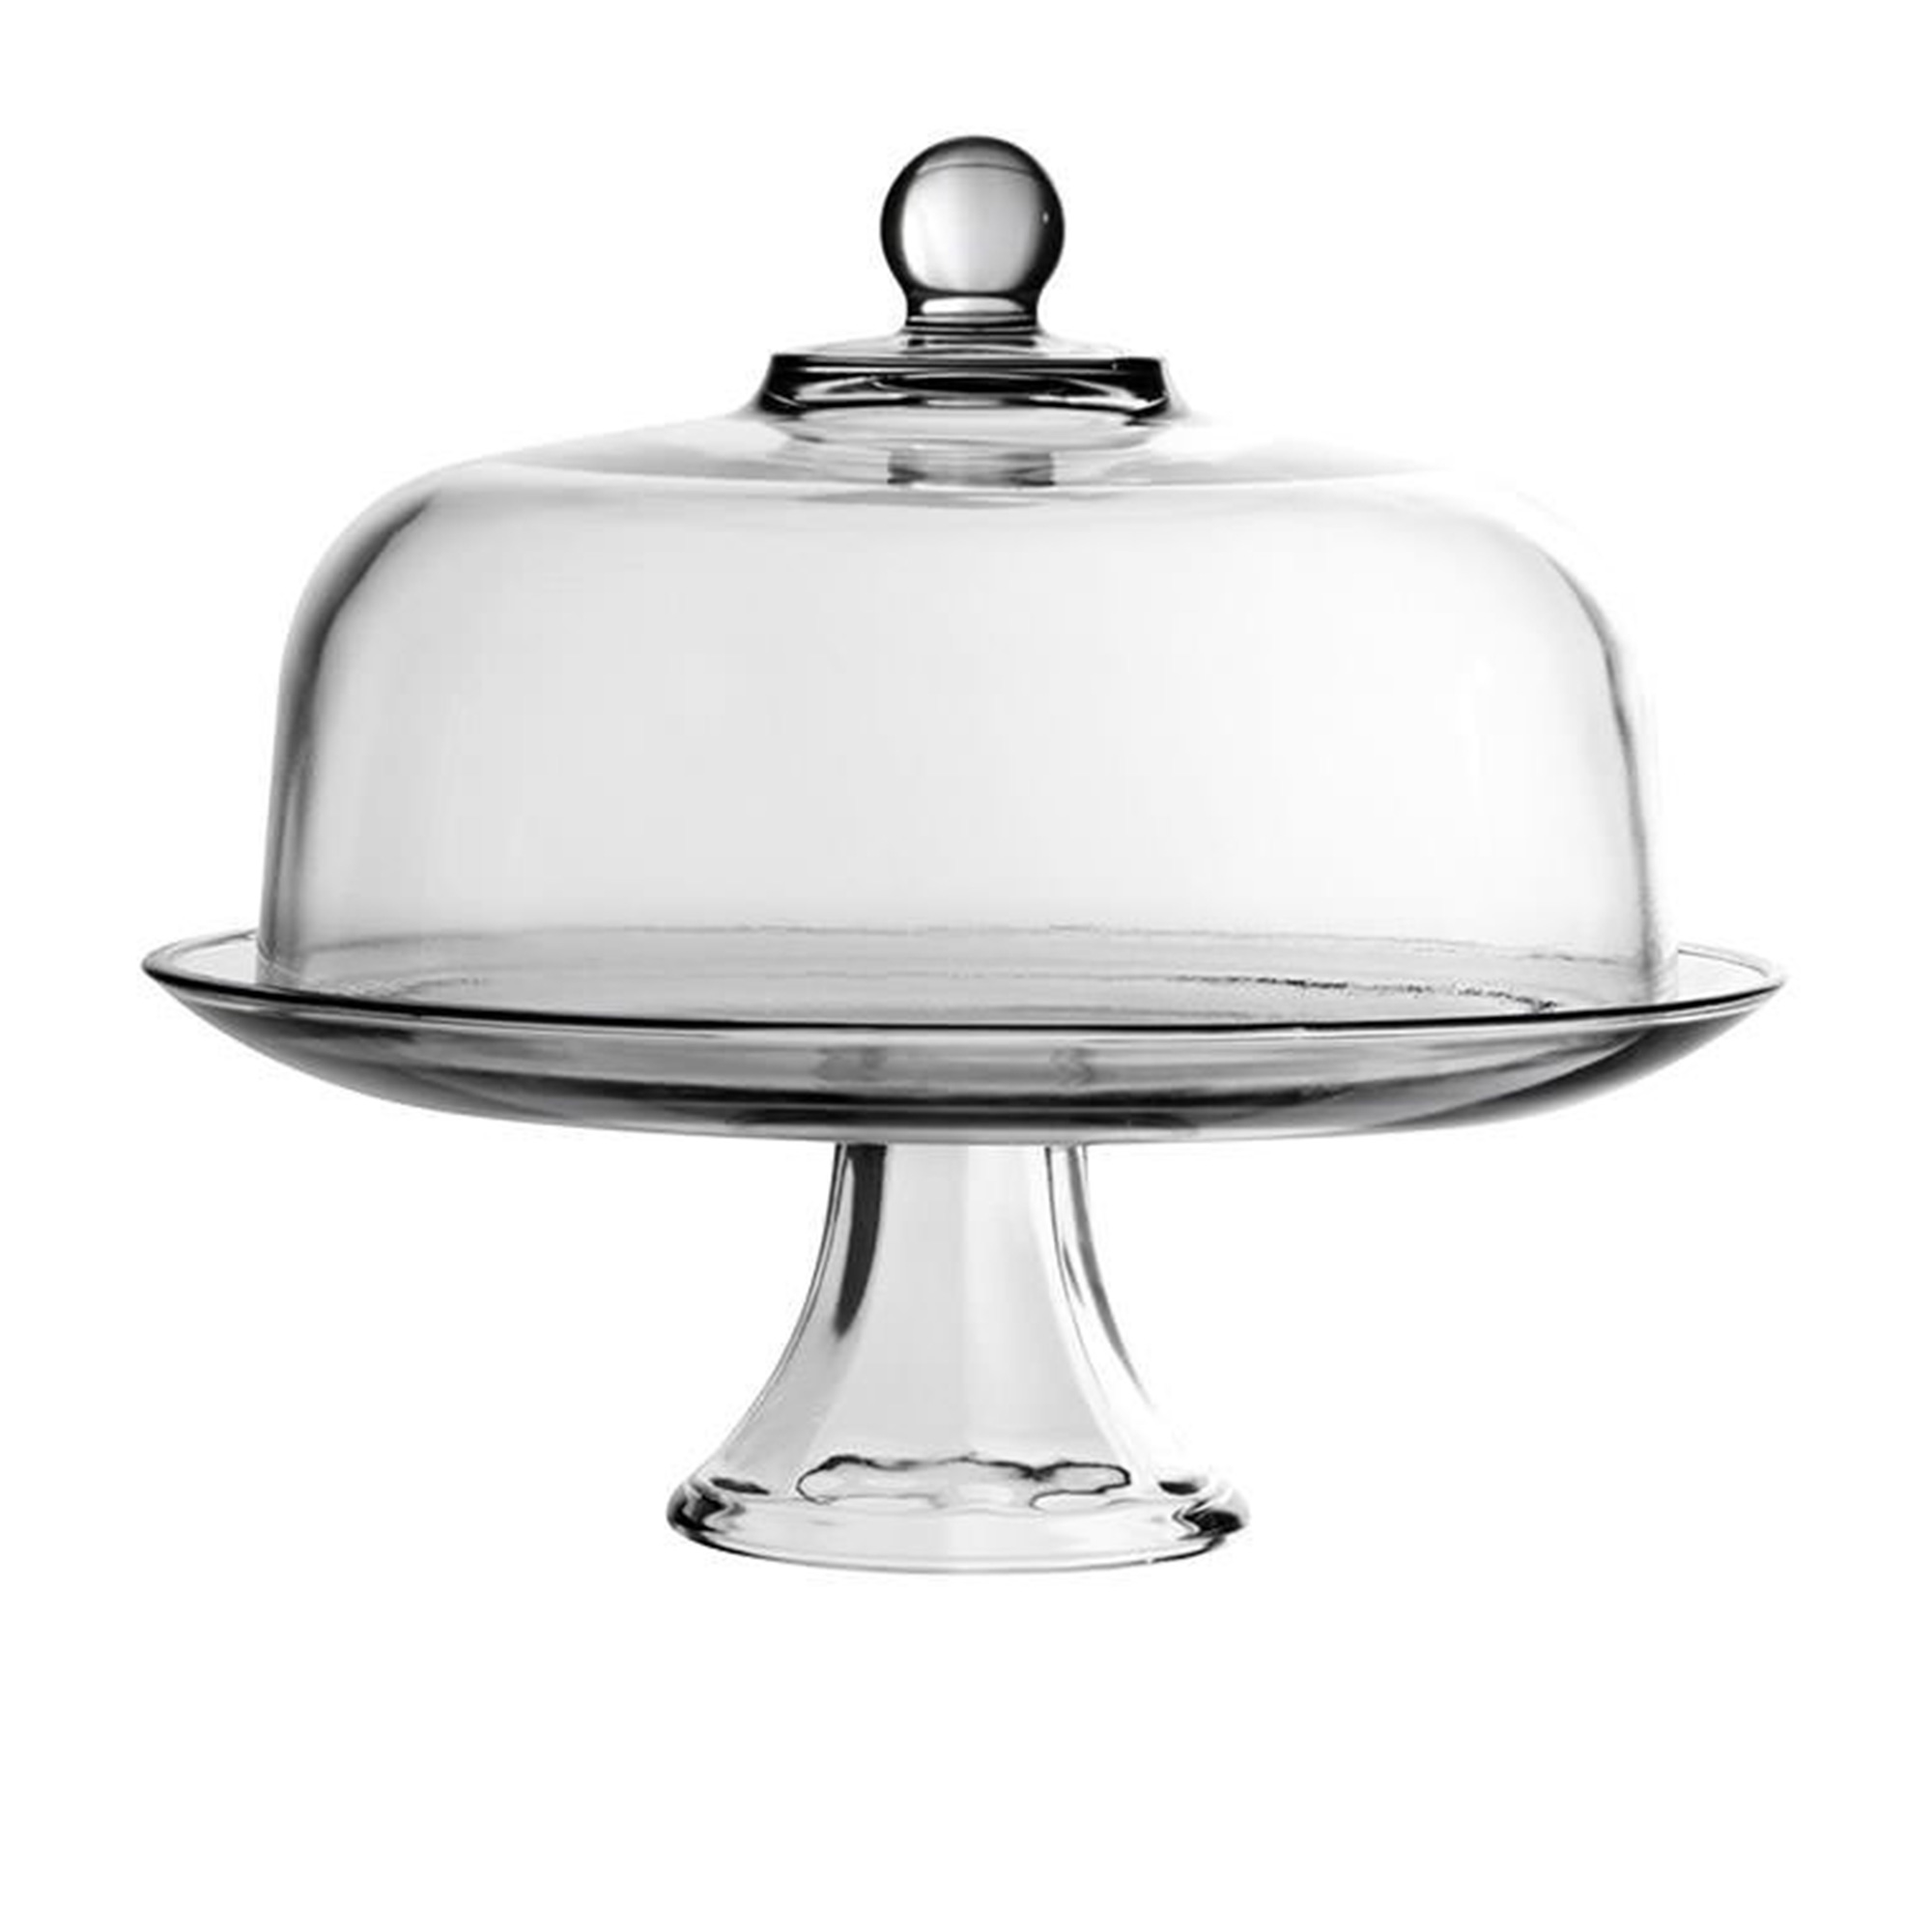 Anchor Hocking Presence Cake Stand & Dome 33cm